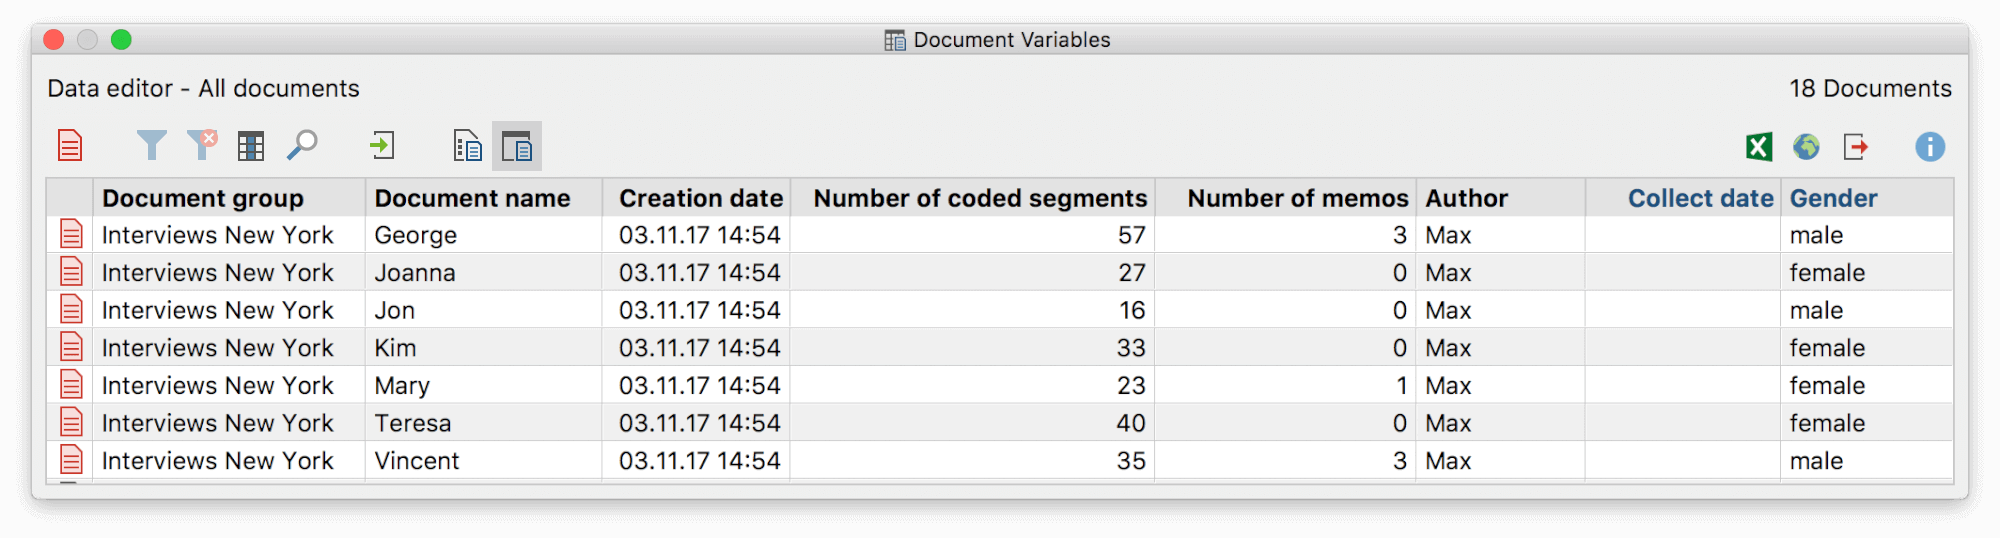 Table view of an example project's document variables